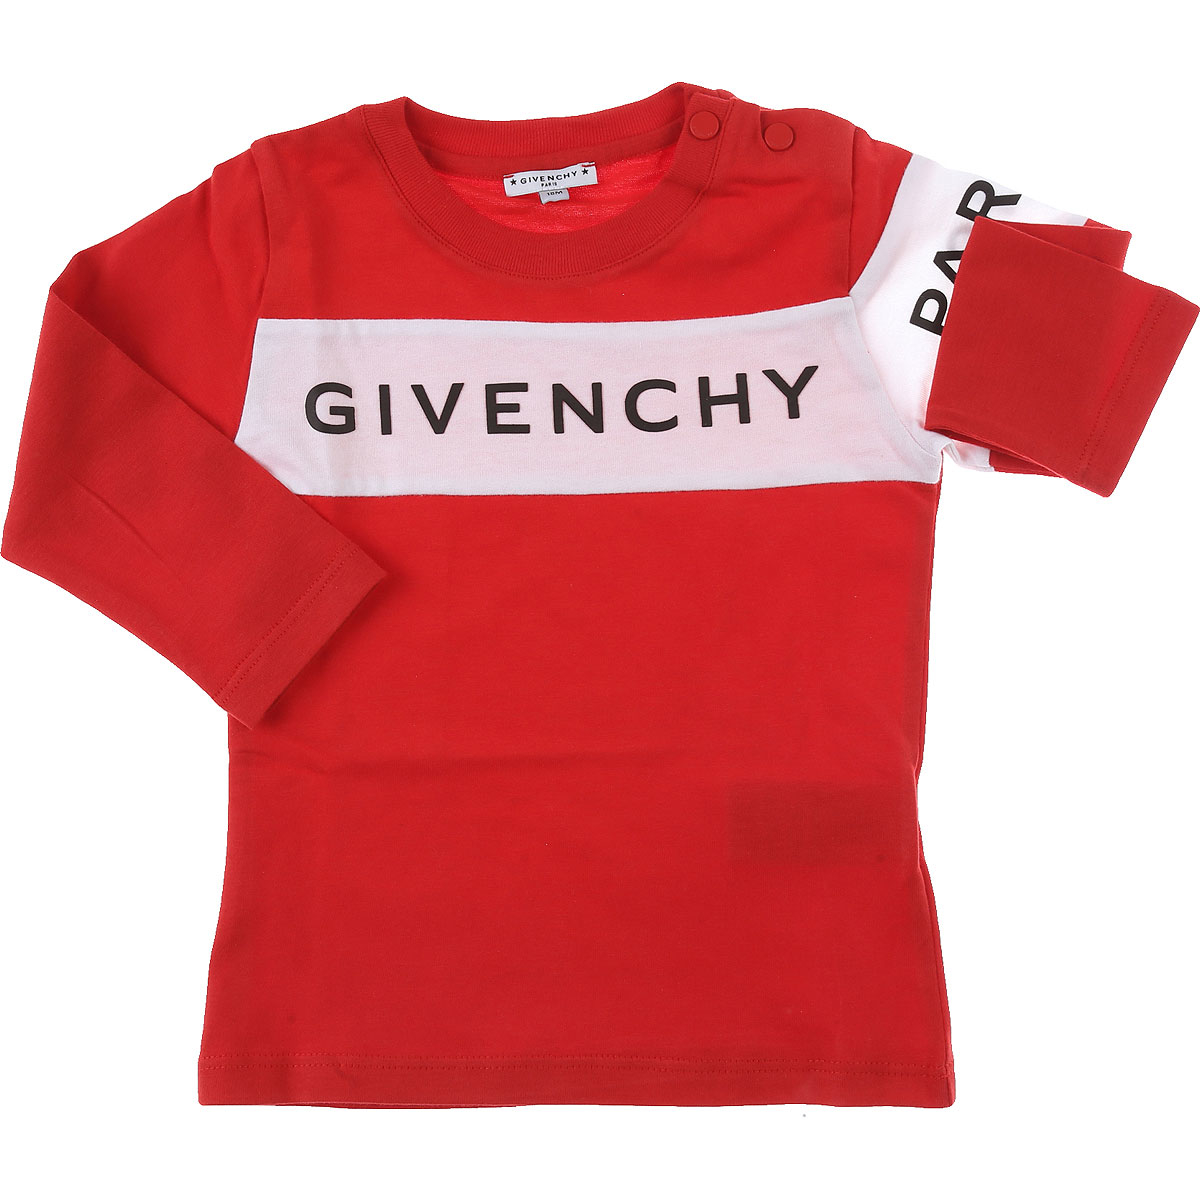 Givenchy Baby T-Shirt for Boys Red Canada - GOOFASH - Mens T-SHIRTS